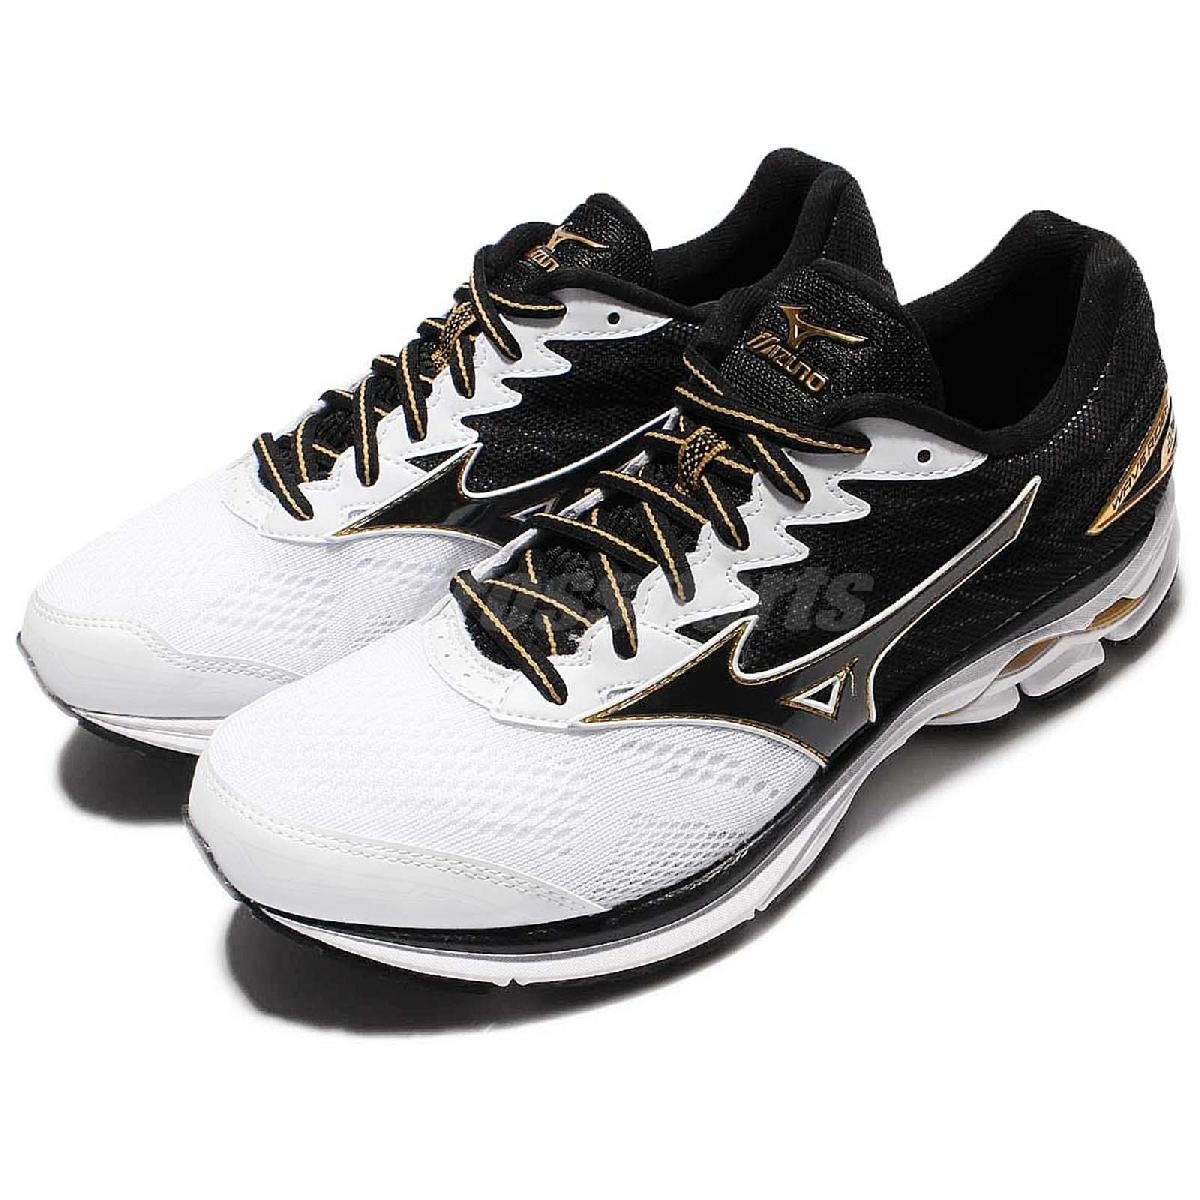 美津濃Mizuno Wave Rider 20 2E Wide寬楦頭慢跑鞋黑白金男鞋PUMP306 J1GC170414